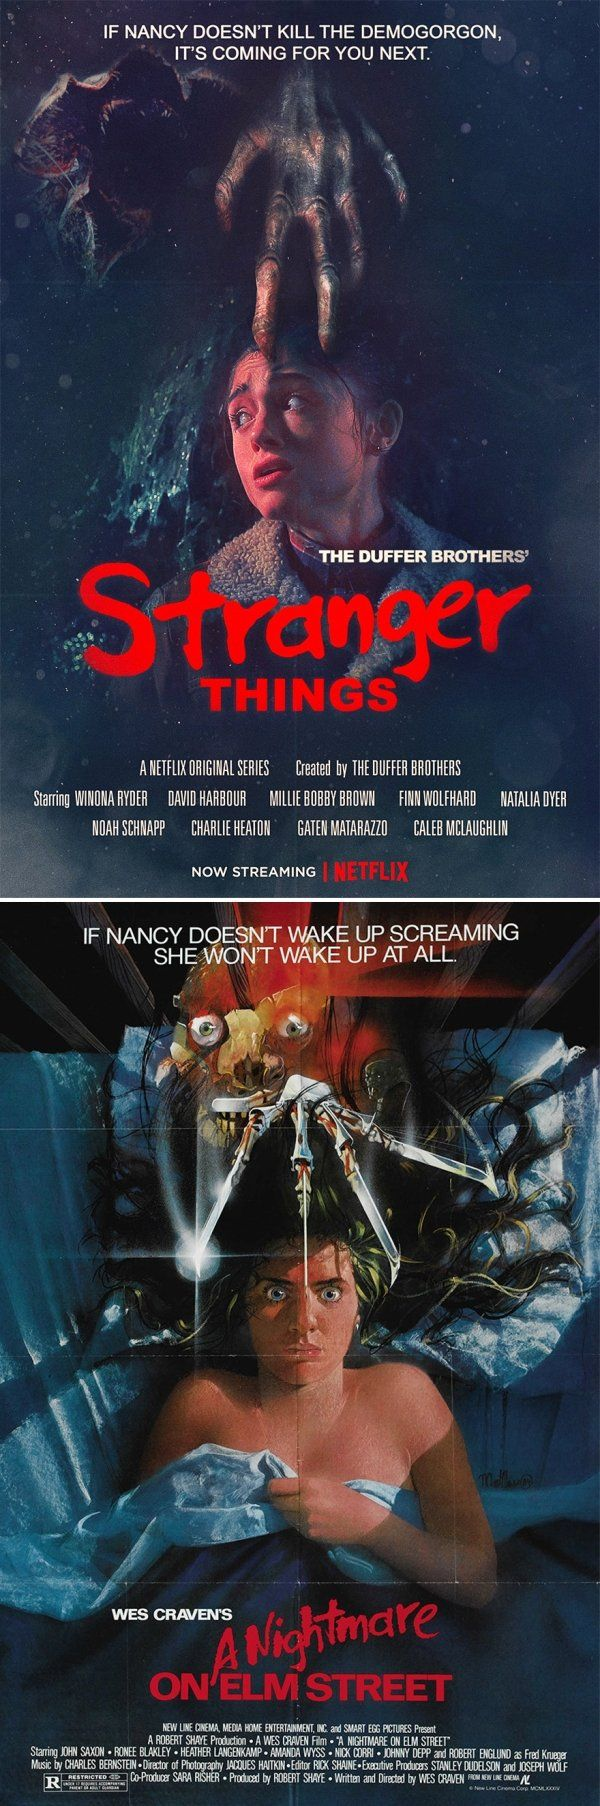 'Stranger Things' Reimagined As Vintage Horror Movie Posters (7 pics)